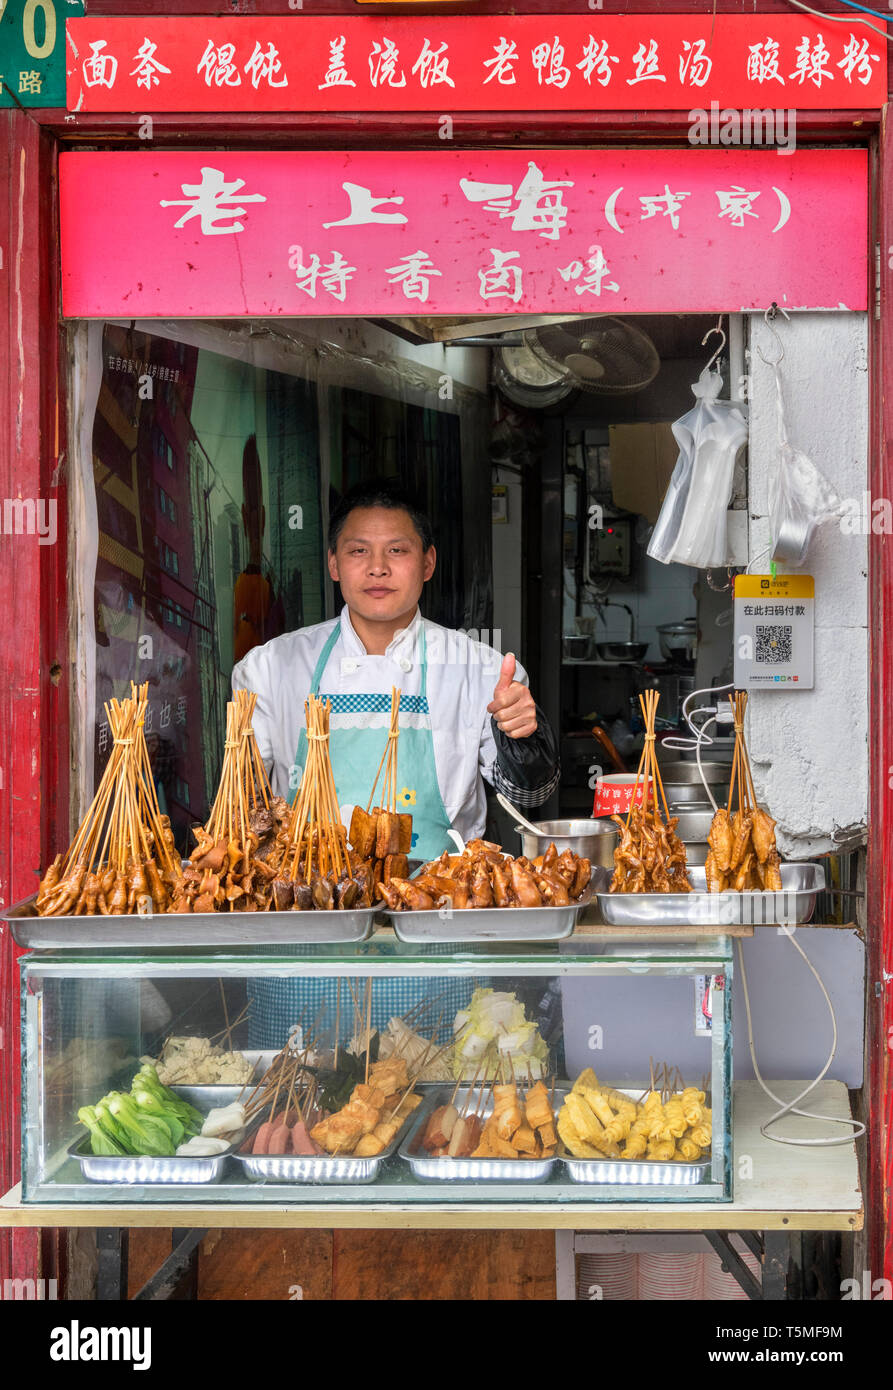 Vendor giving a thumbs up at a traditional food stall in the Old Town (Nanshi district), Shanghai, China - Stock Image